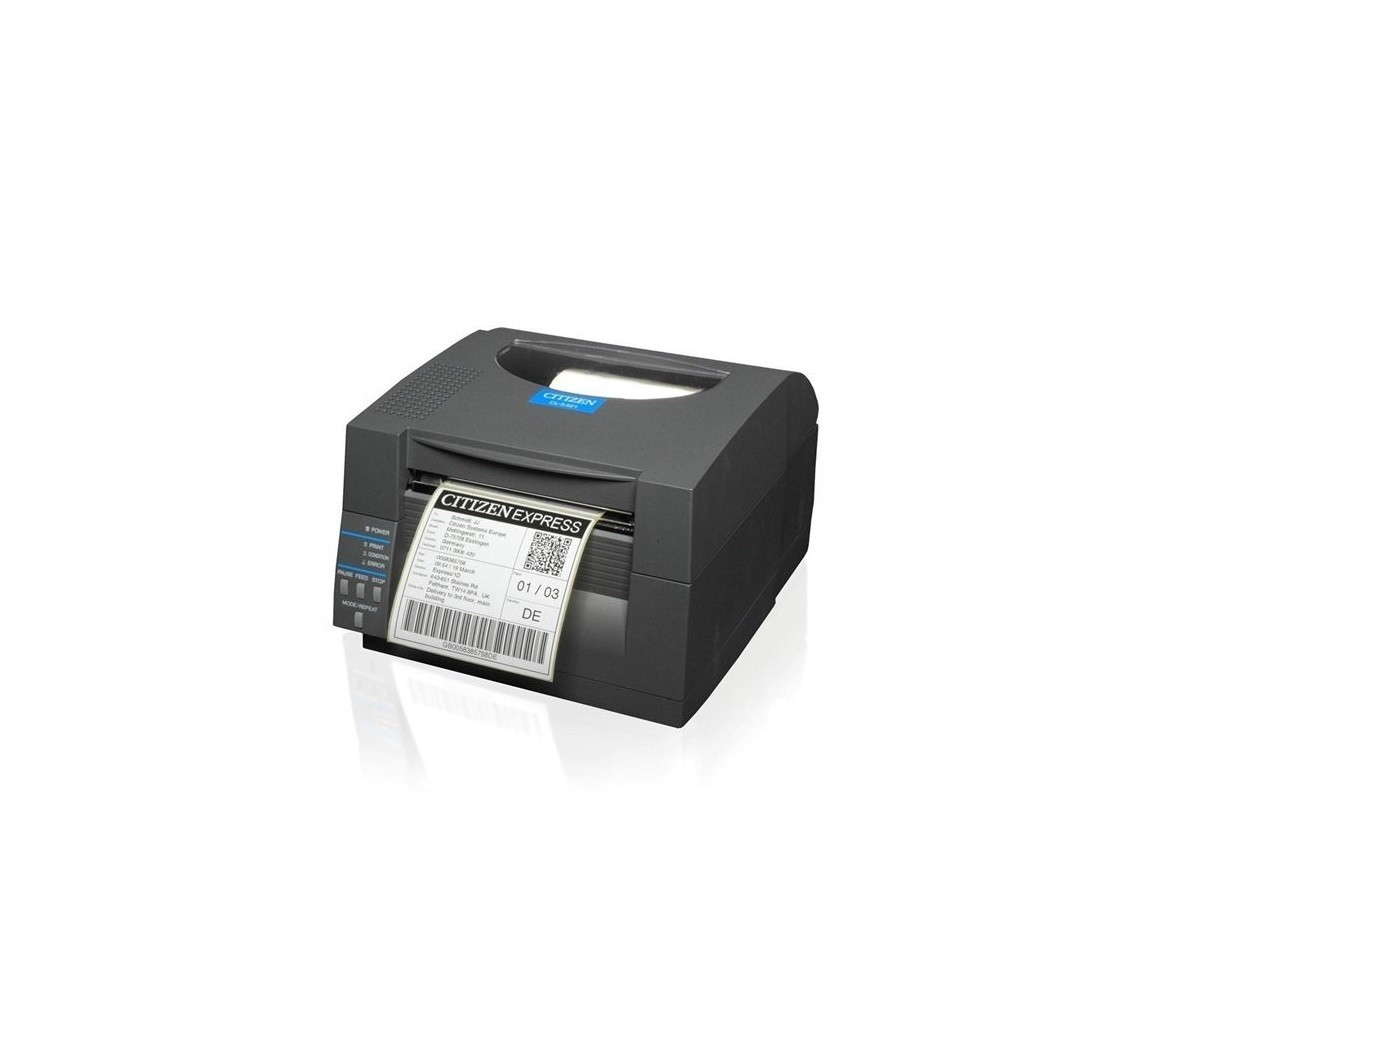 Citizen CL-S521 Direct Thermal Monochrome Printer 203dpi USB Serial Black CLS521GRY CL-S521-GRY